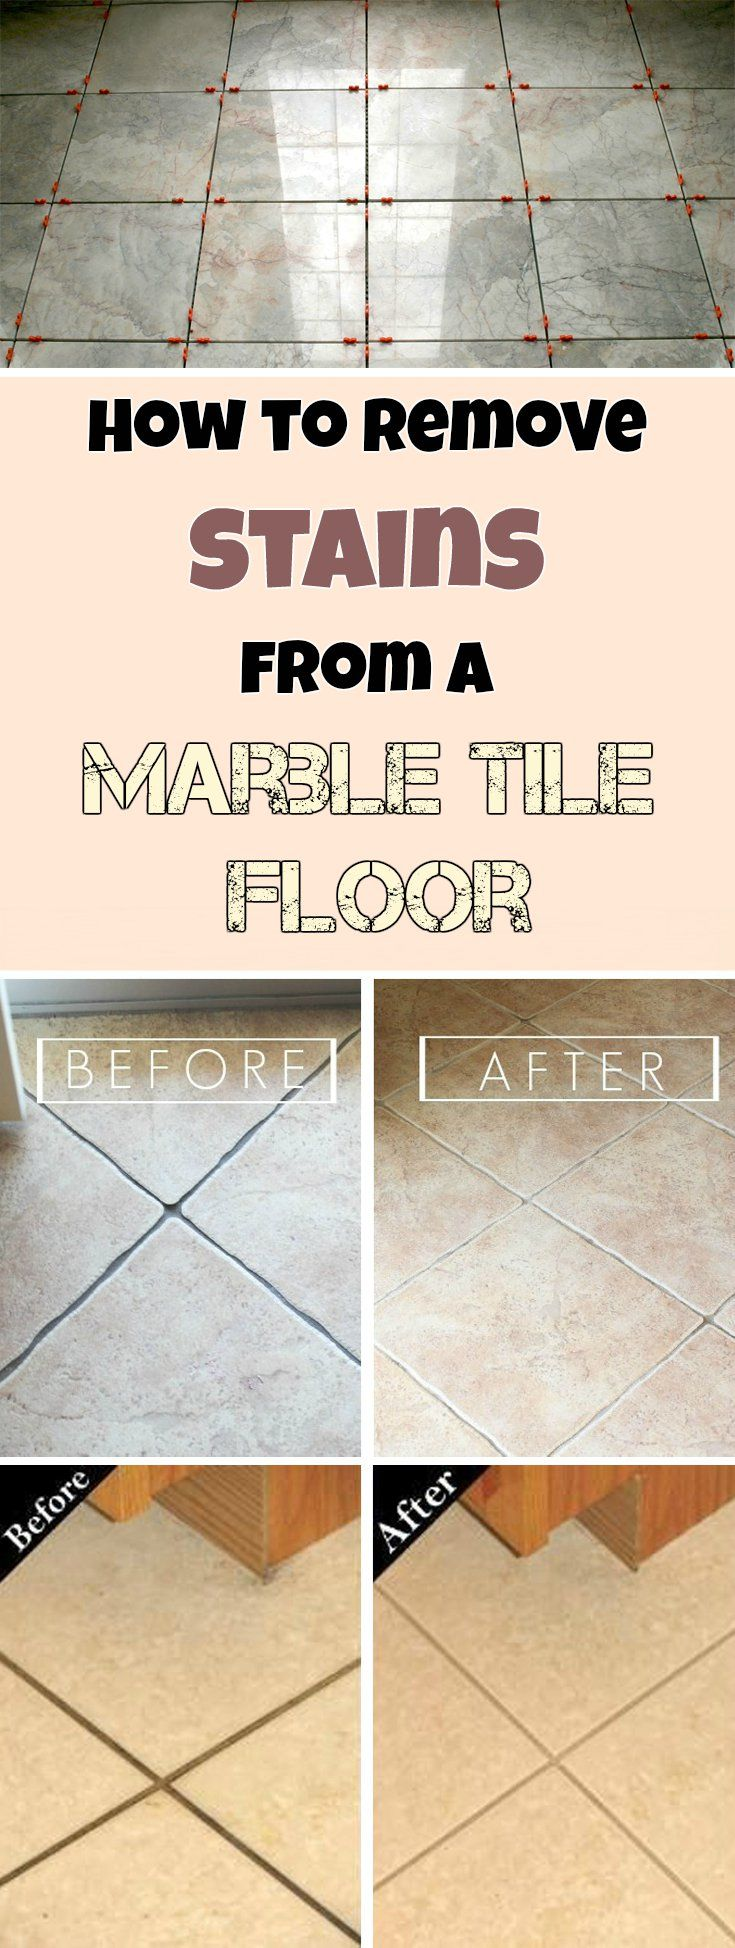 Best 25 marble floor cleaner ideas on pinterest carrera glacier how to remove stains from marble tile floor mycleaningsolutions cleaning diycleaning dailygadgetfo Images